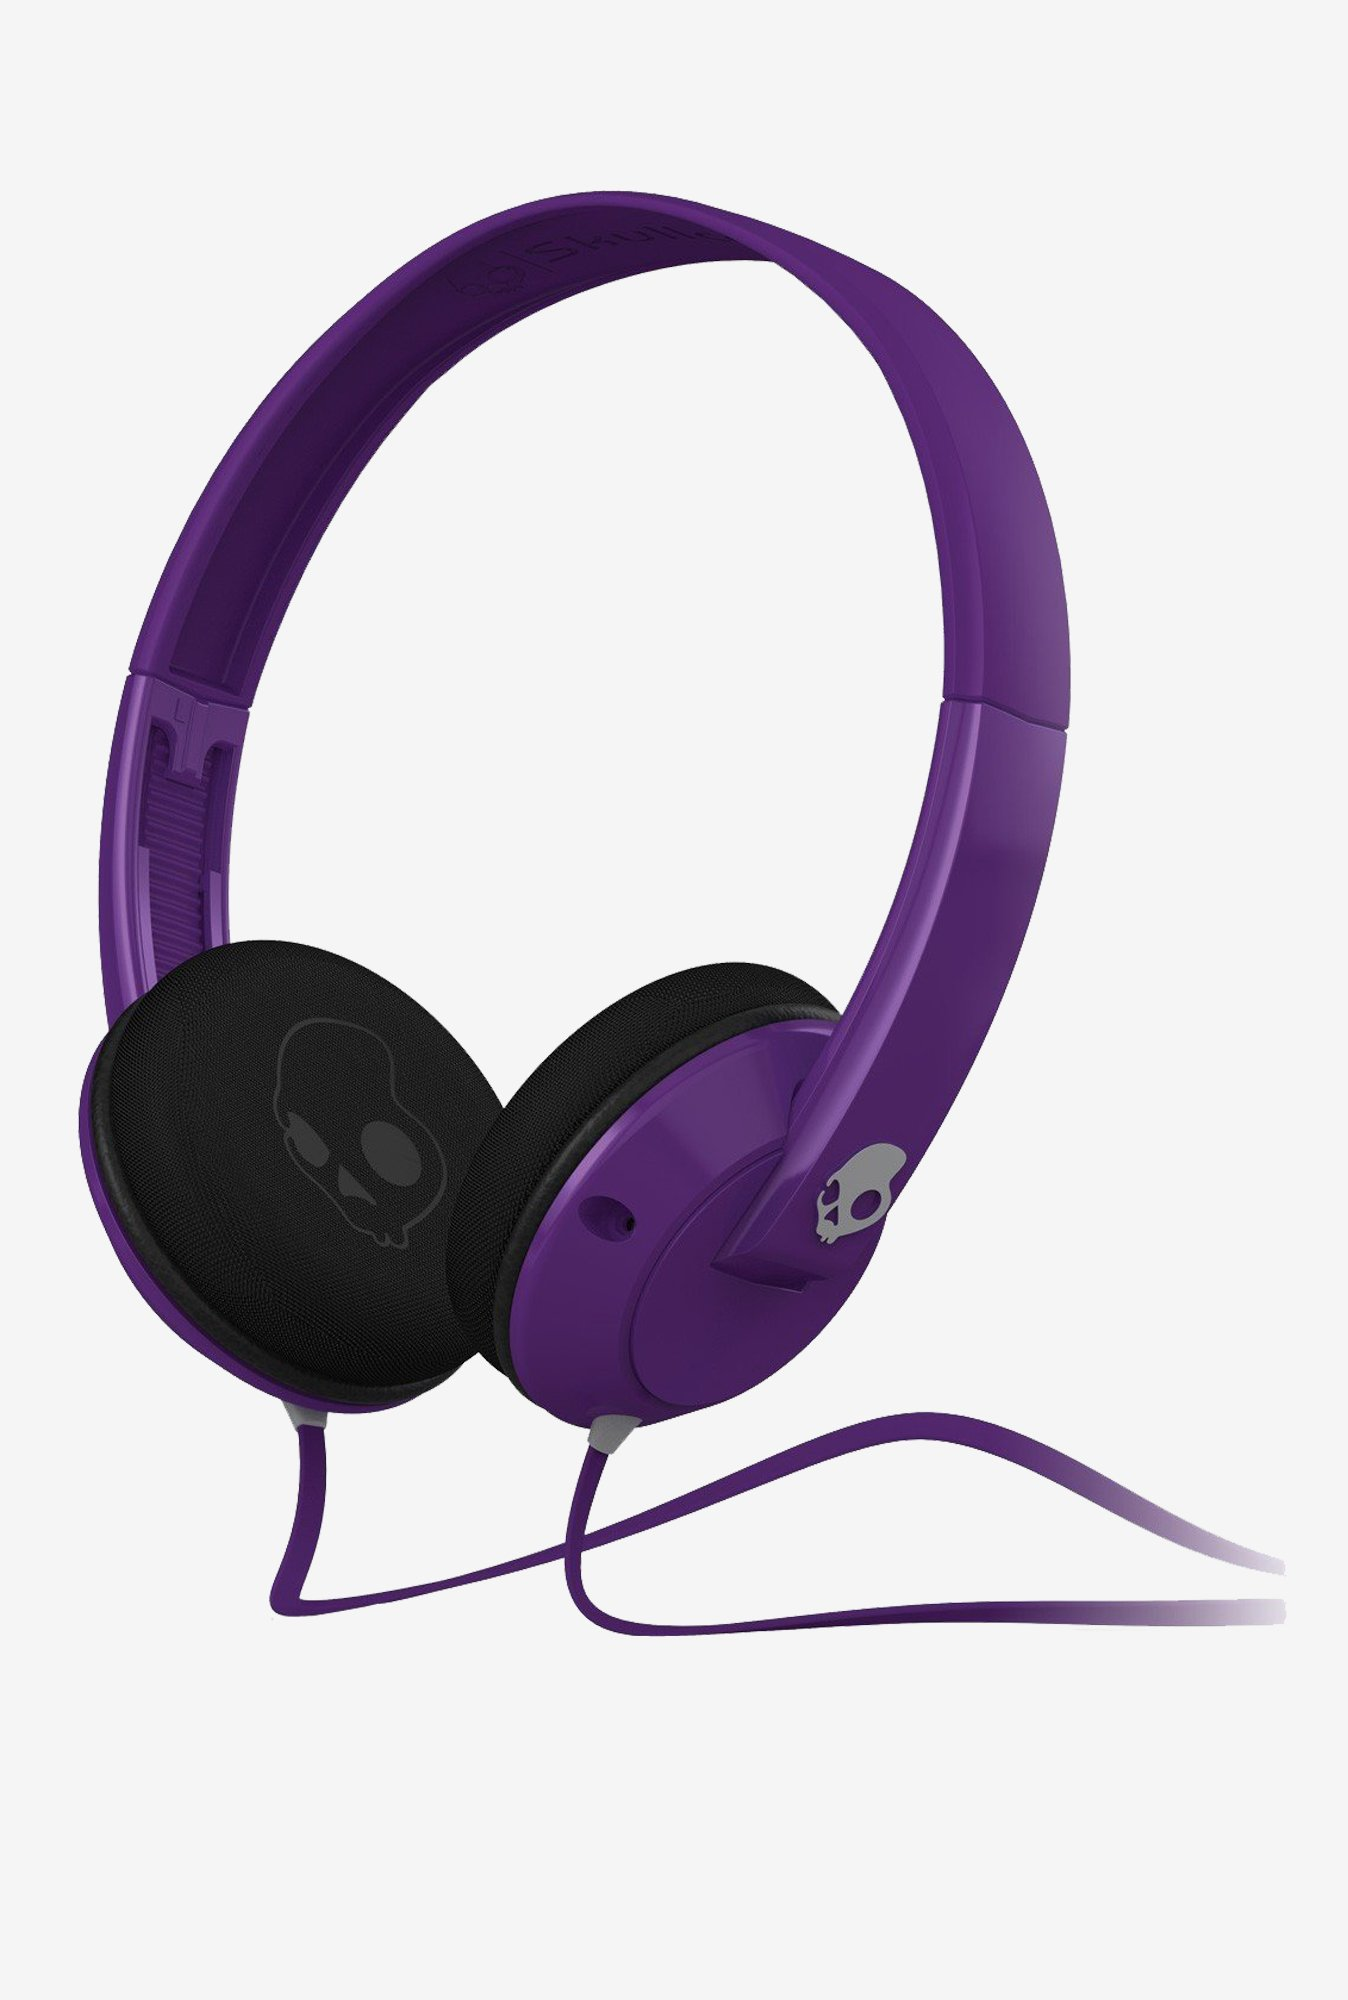 Skullcandy S5URDZ-212 On the Ear Headphone (Purple)